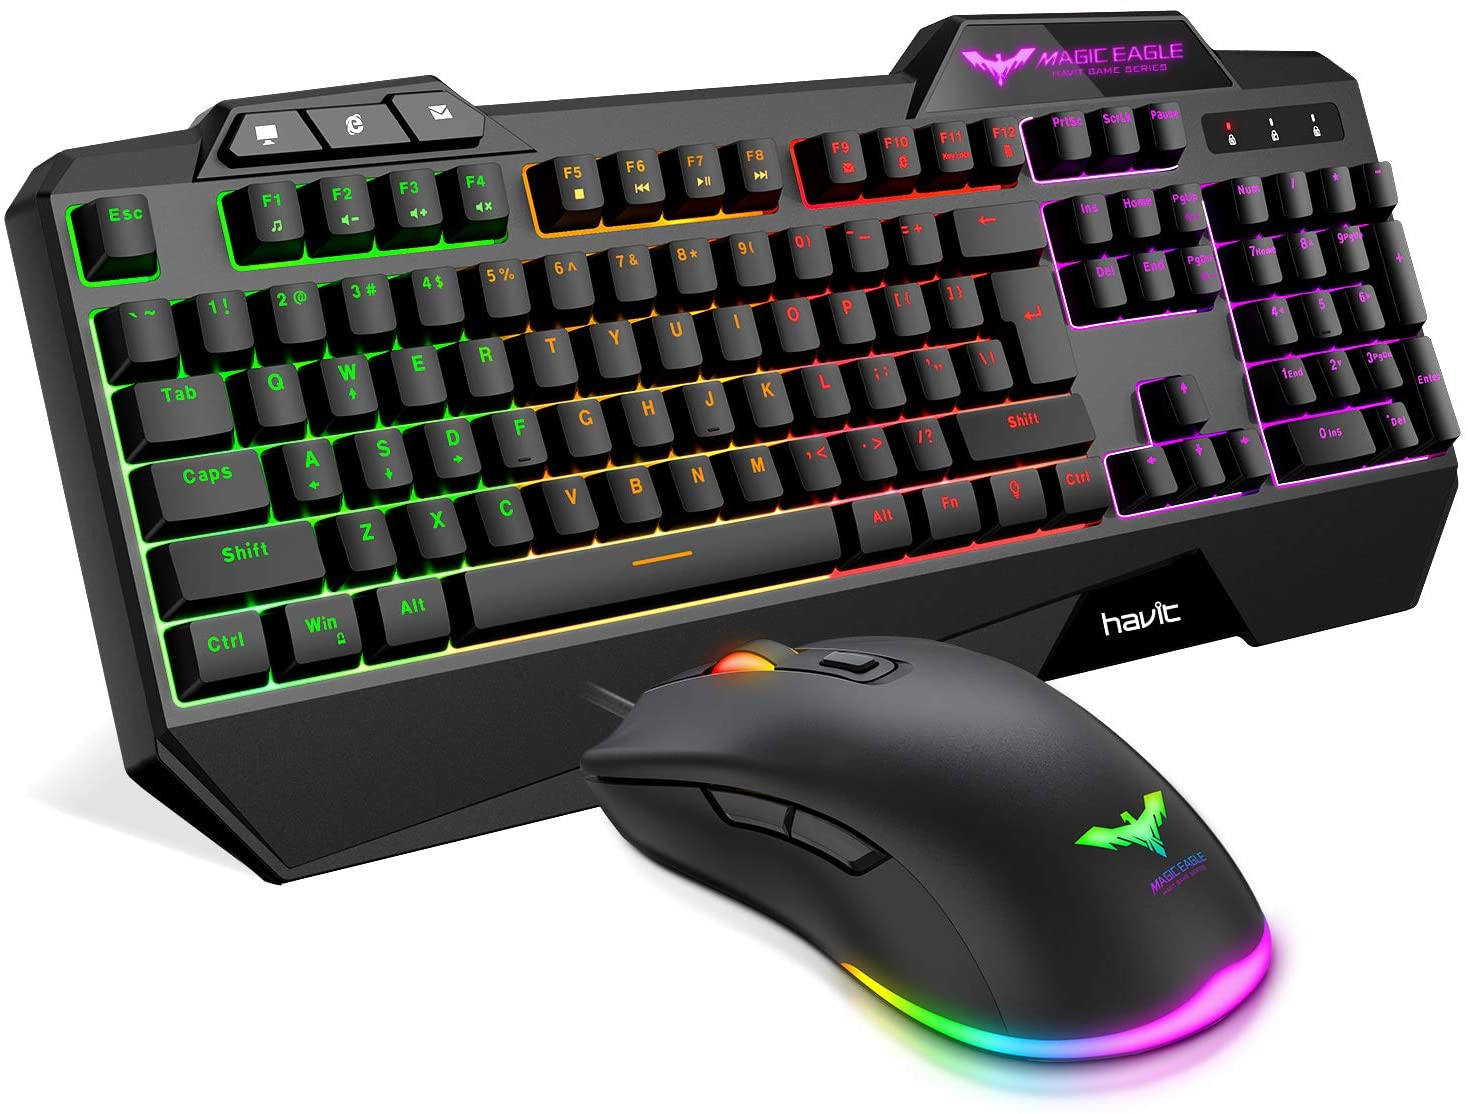 Review of Havit Keyboard Rainbow Backlit Wired Gaming Keyboard Mouse Combo, LED 104 Keys